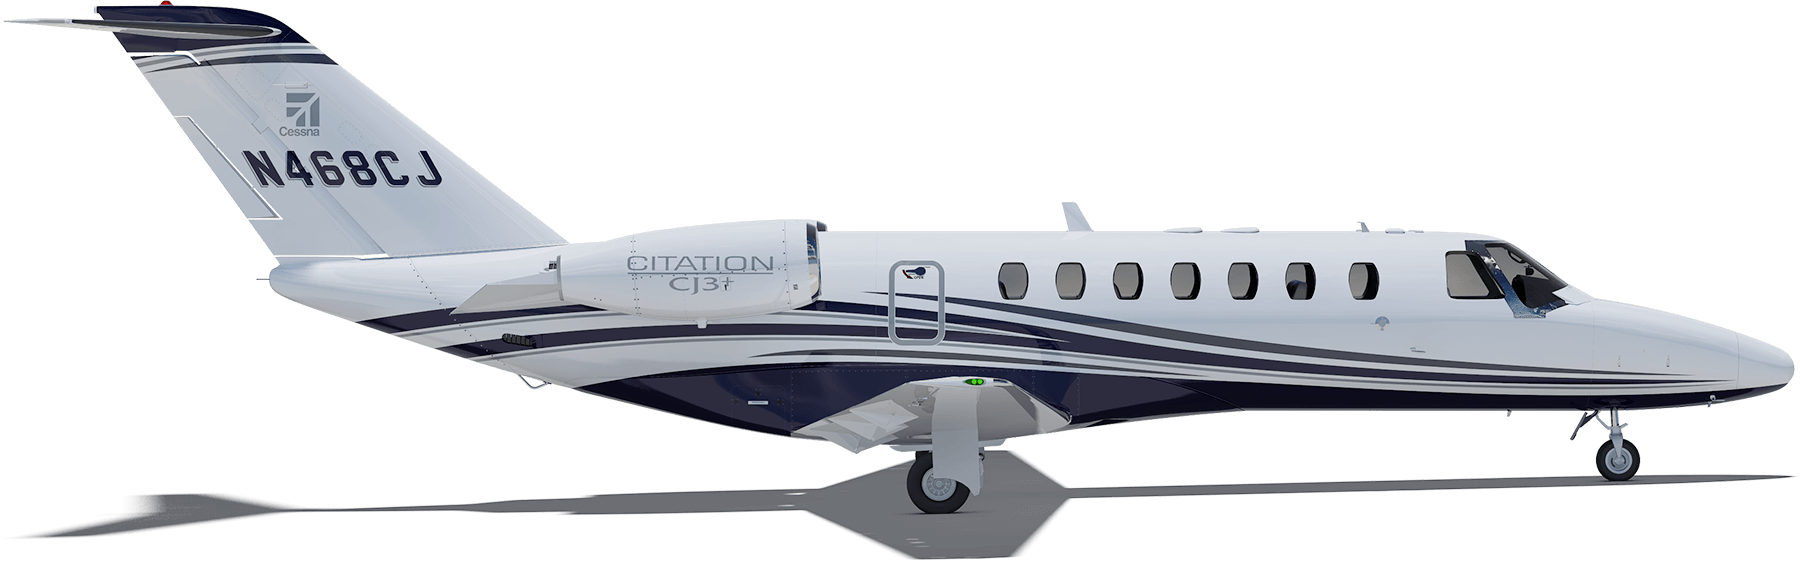 Cessna drawing profile. Citation cj height